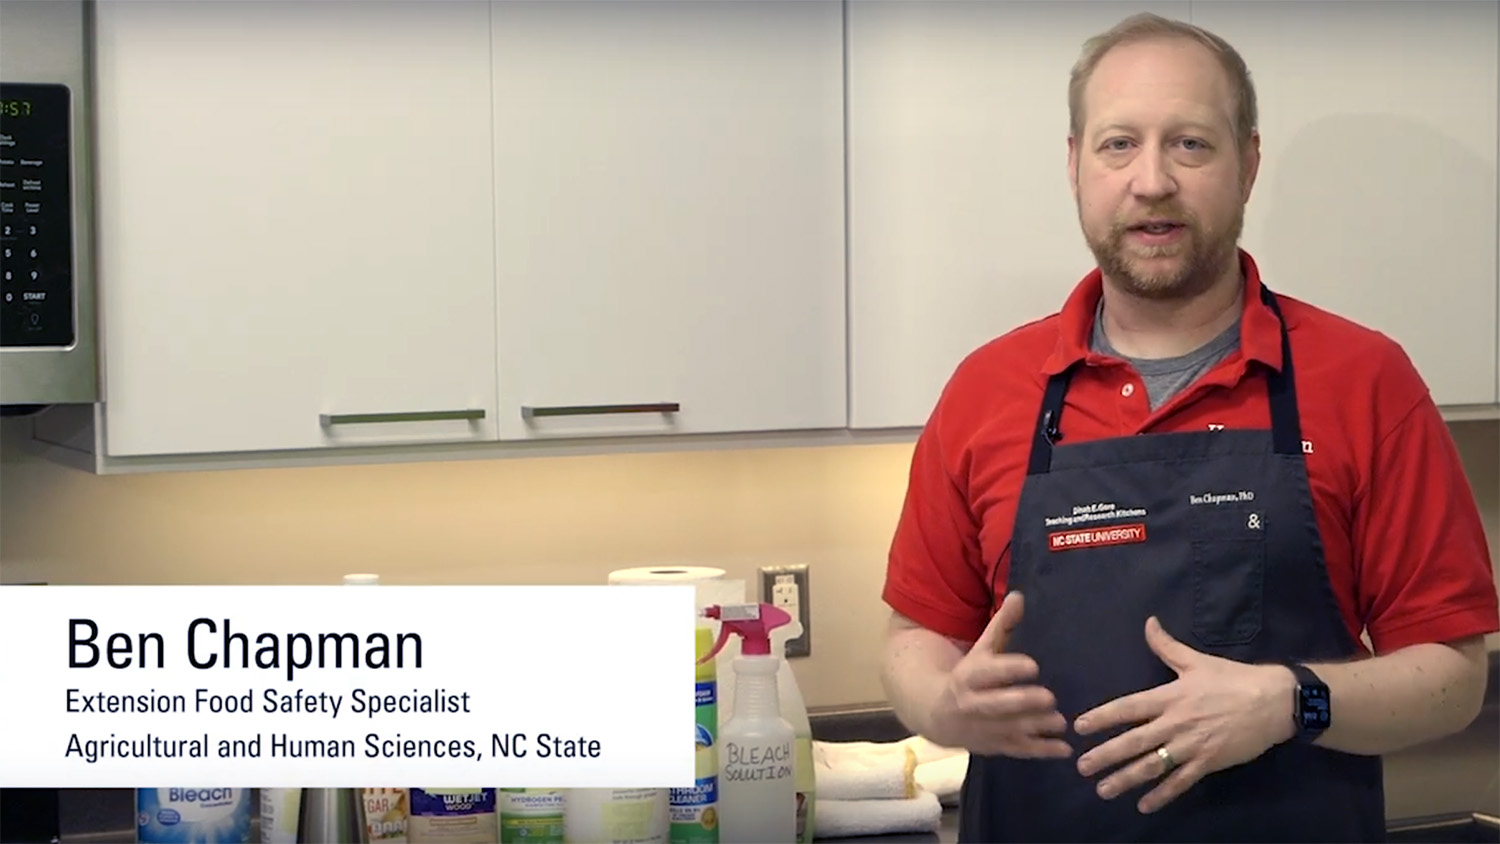 A still from a video showing Ben Chapman in an apron as he explains how to sanitize surfaces.